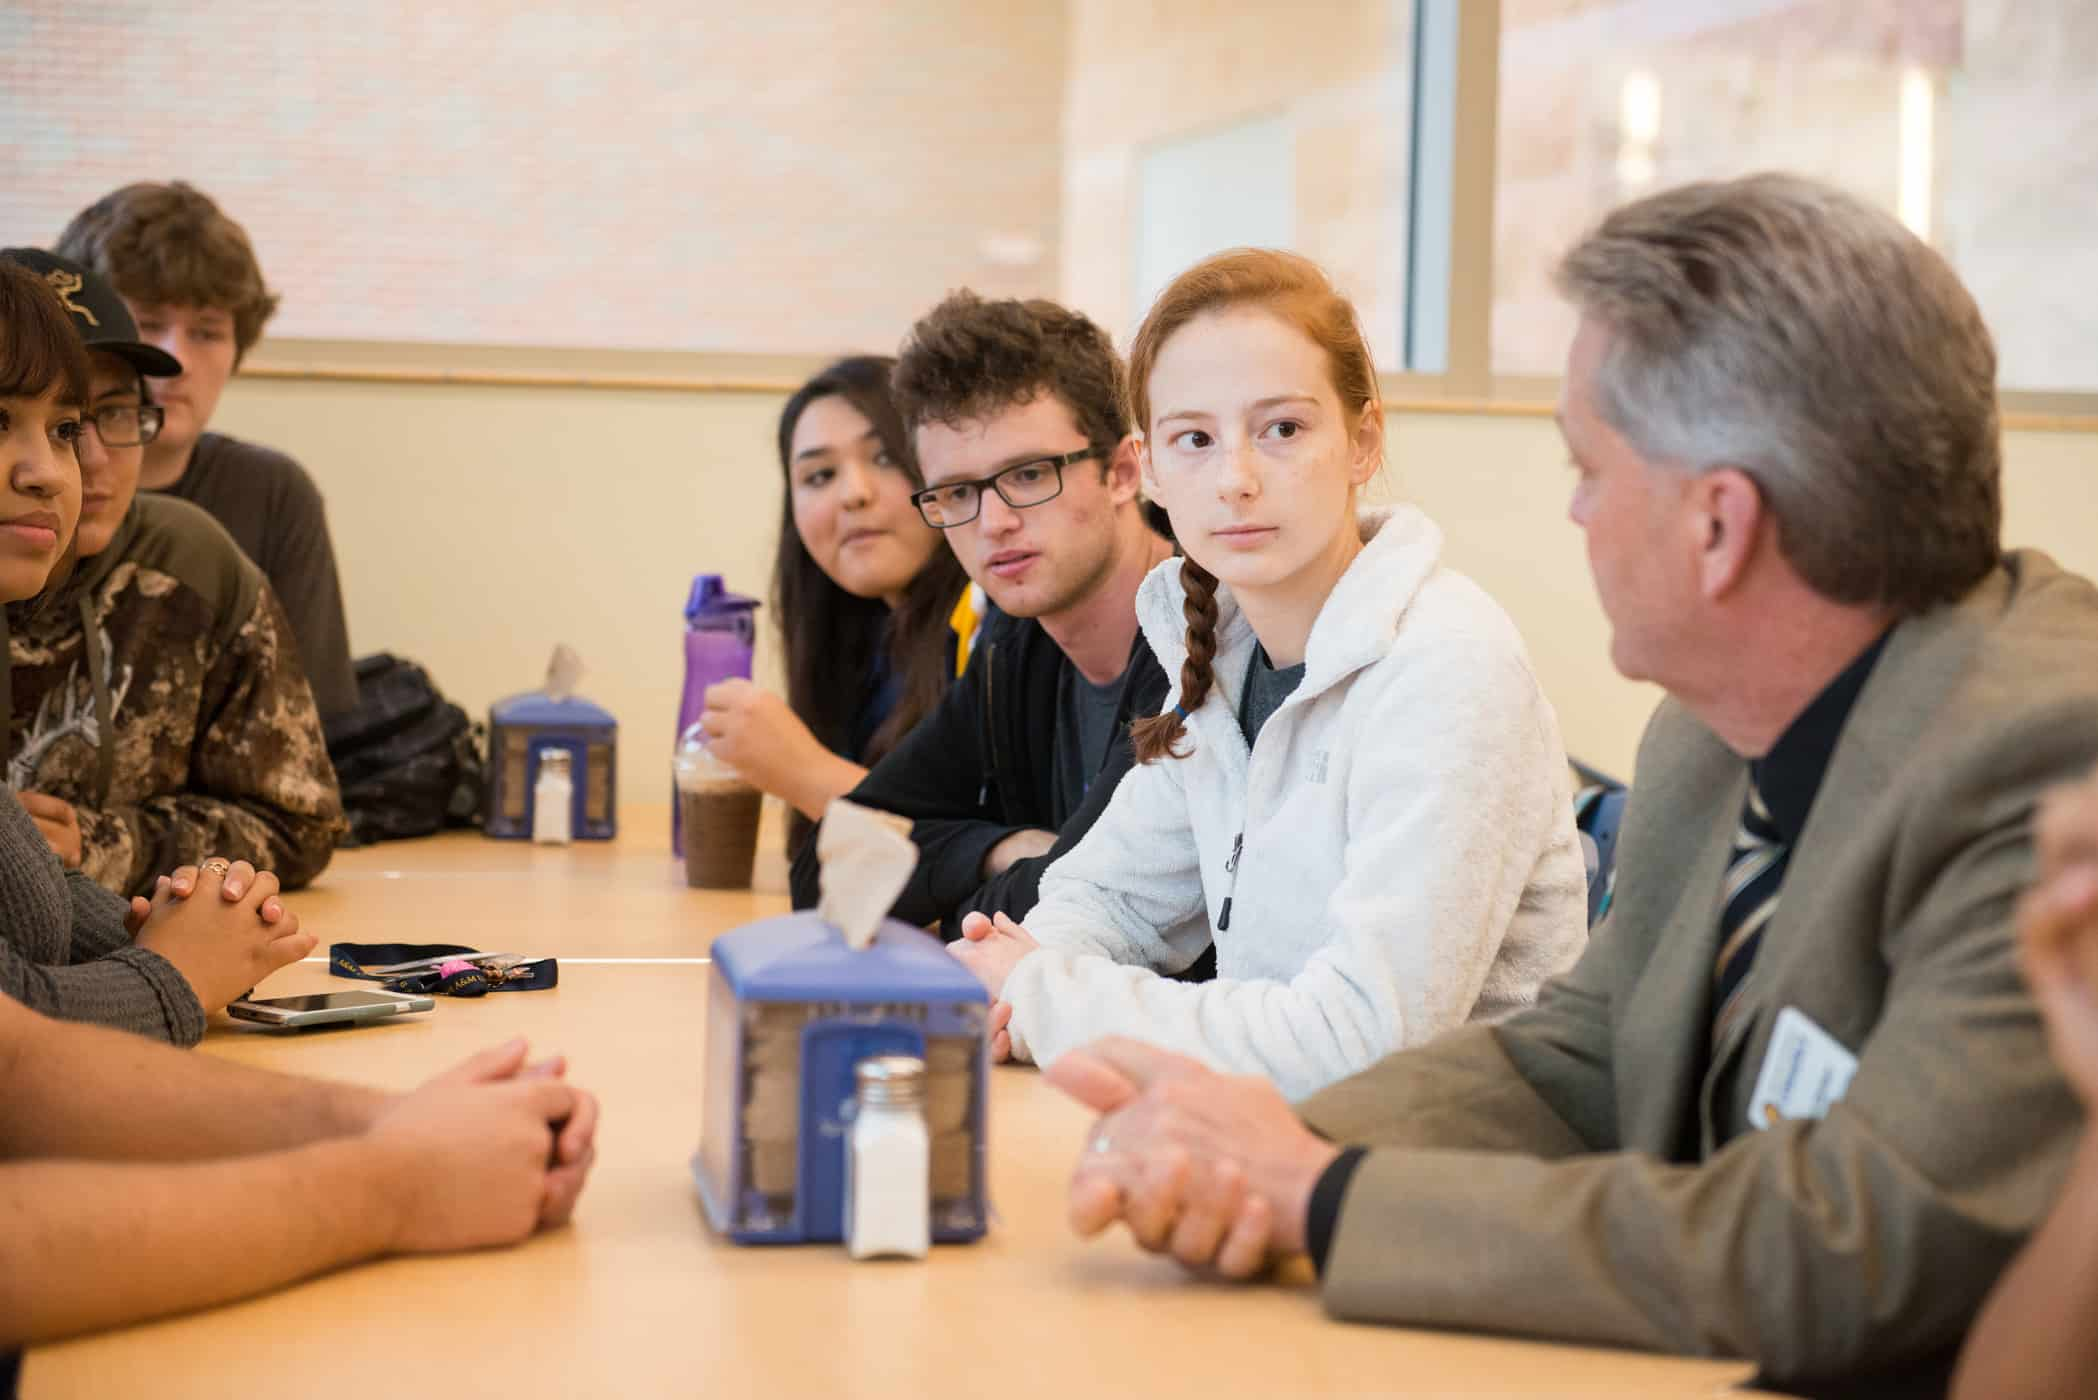 Students sitting with professor at table